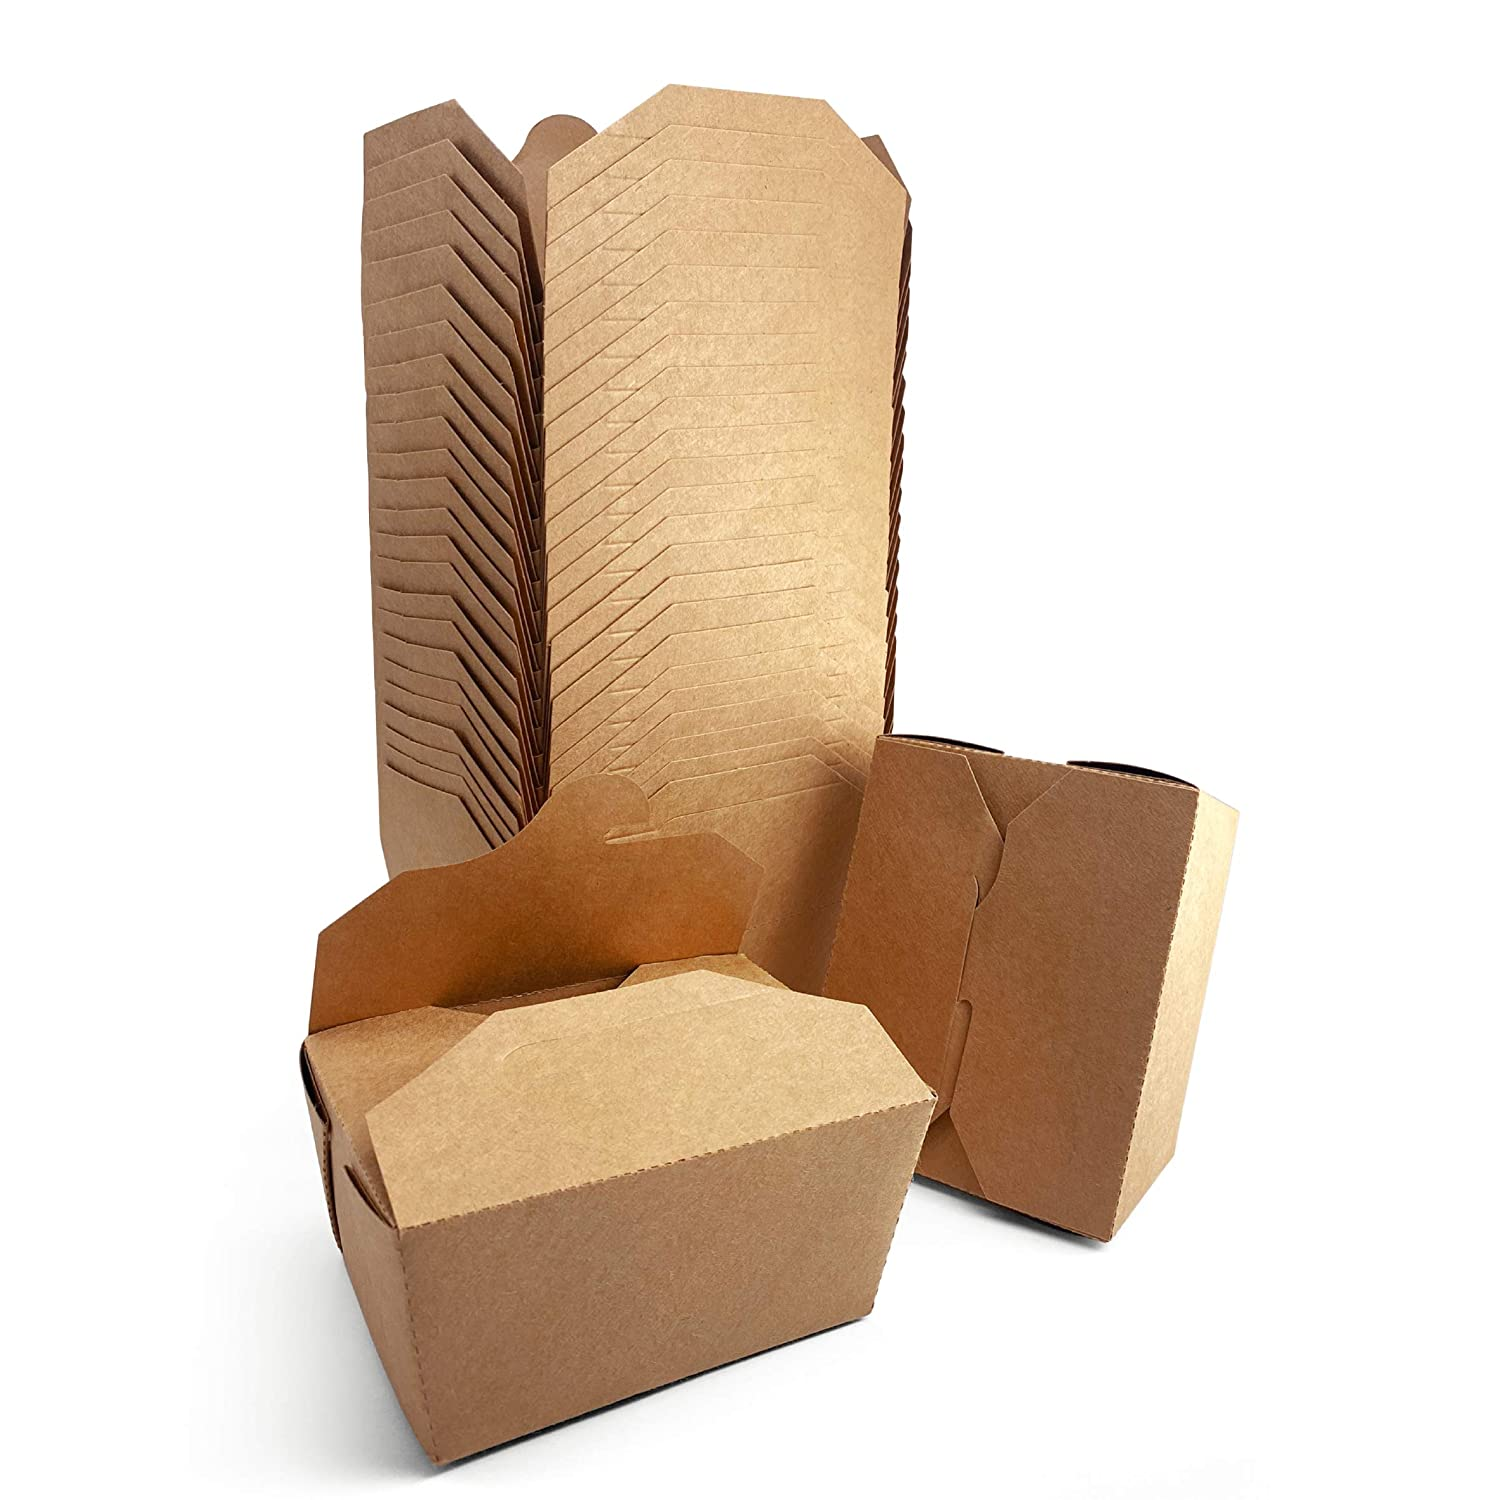 [27 oz, 36-Count, Kraft Brown] Papernain Take Out Food Containers, Disposable Paper Box